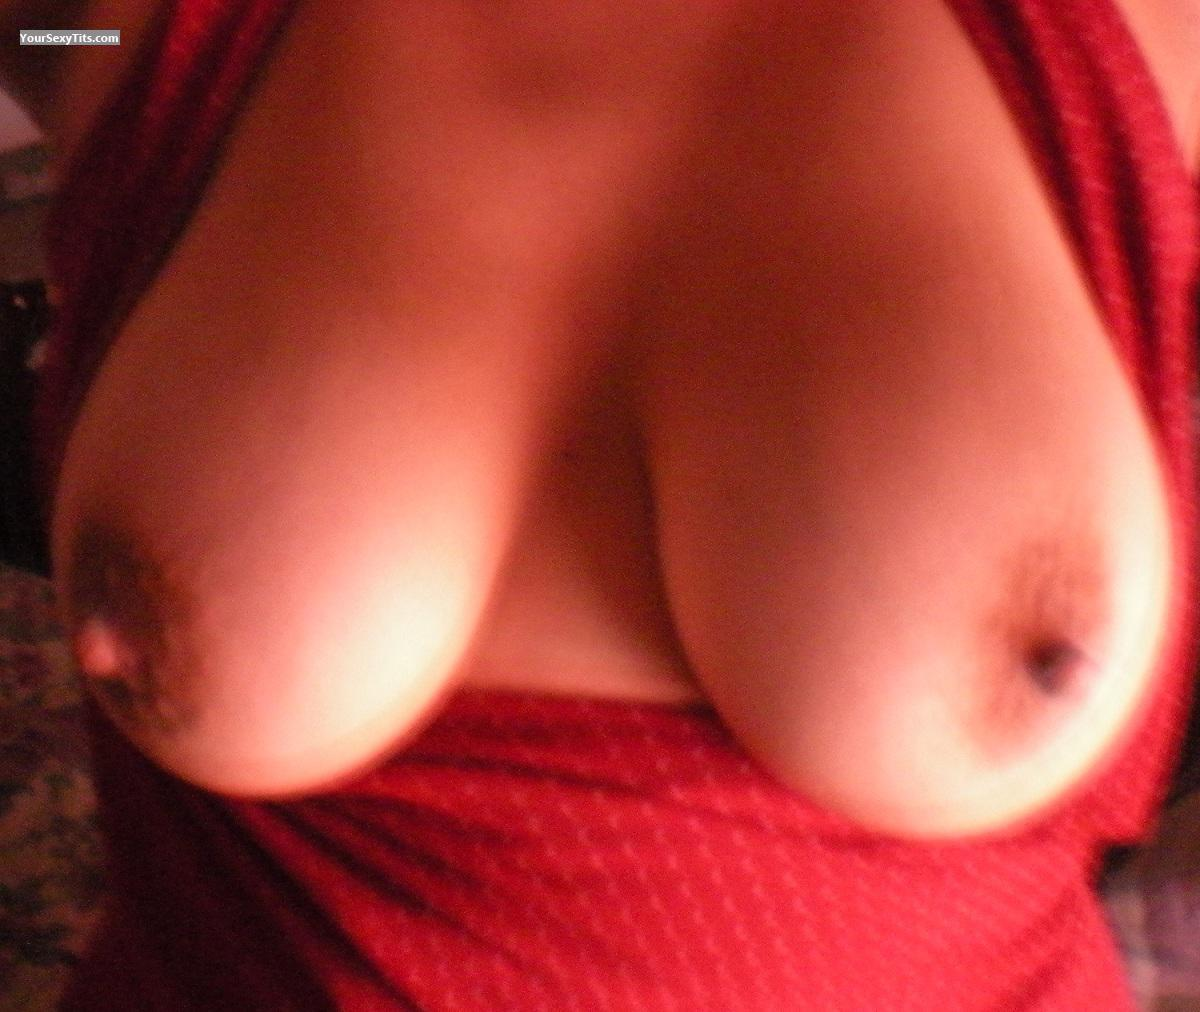 Tit Flash: My Medium Tits (Selfie) - Ash from United States